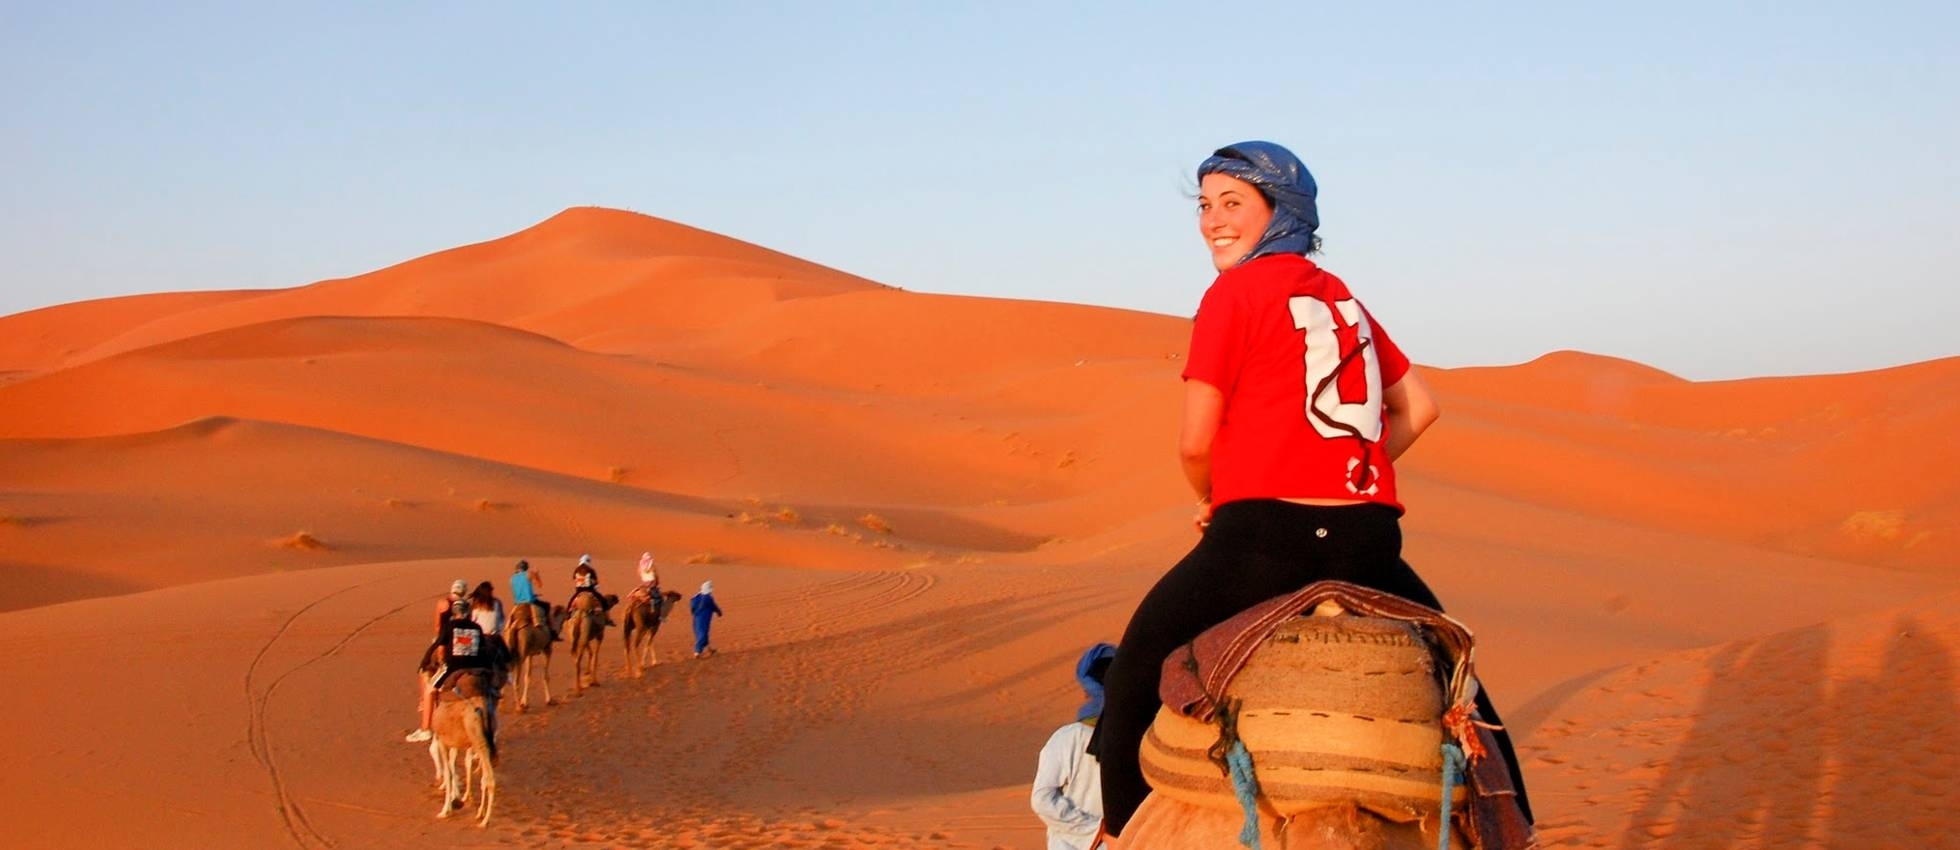 Riding Camels in The Moroccan Desert